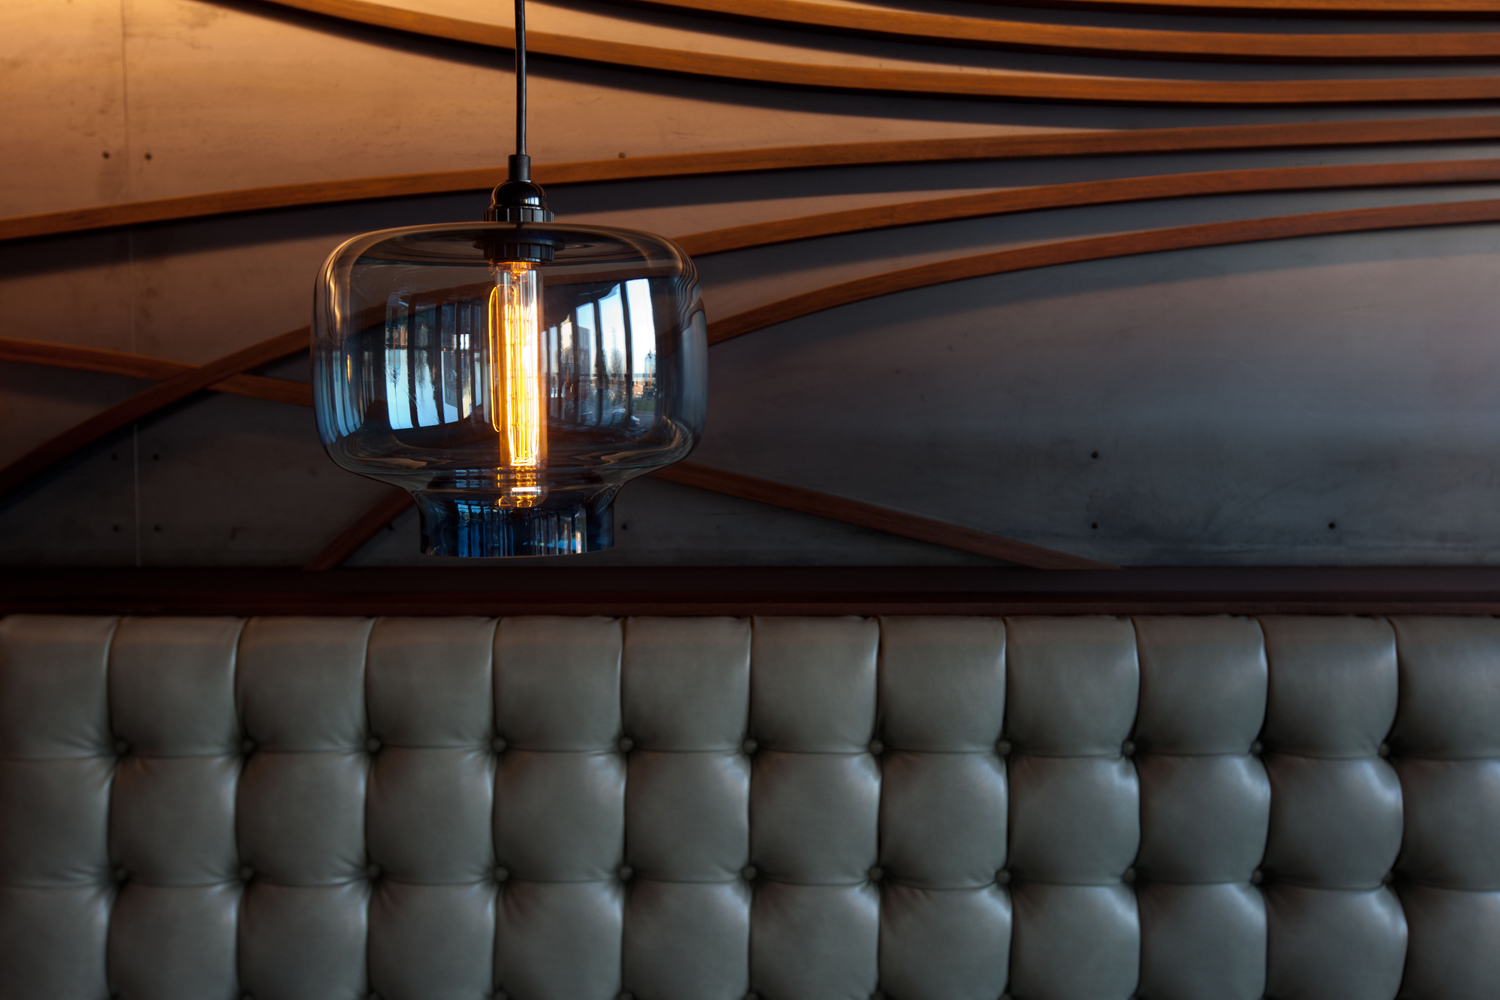 8_banquette close up.jpg